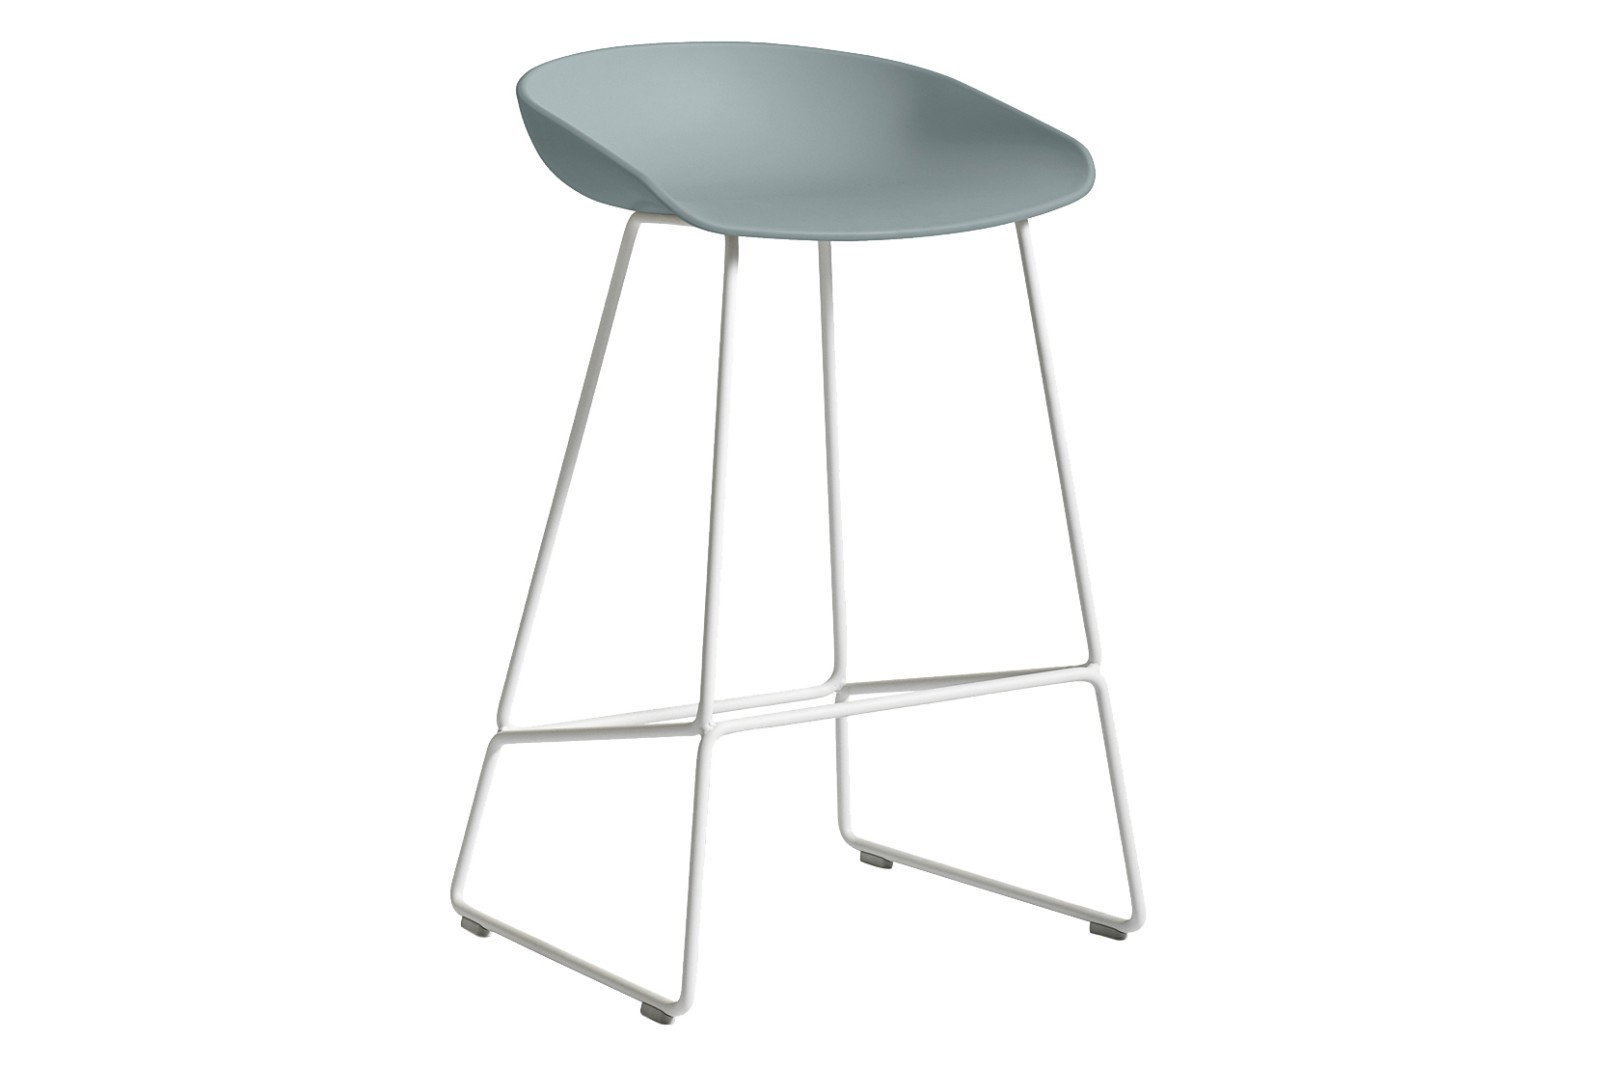 AAS 38 Low Stool Metal White, Plastic Dusty Blue